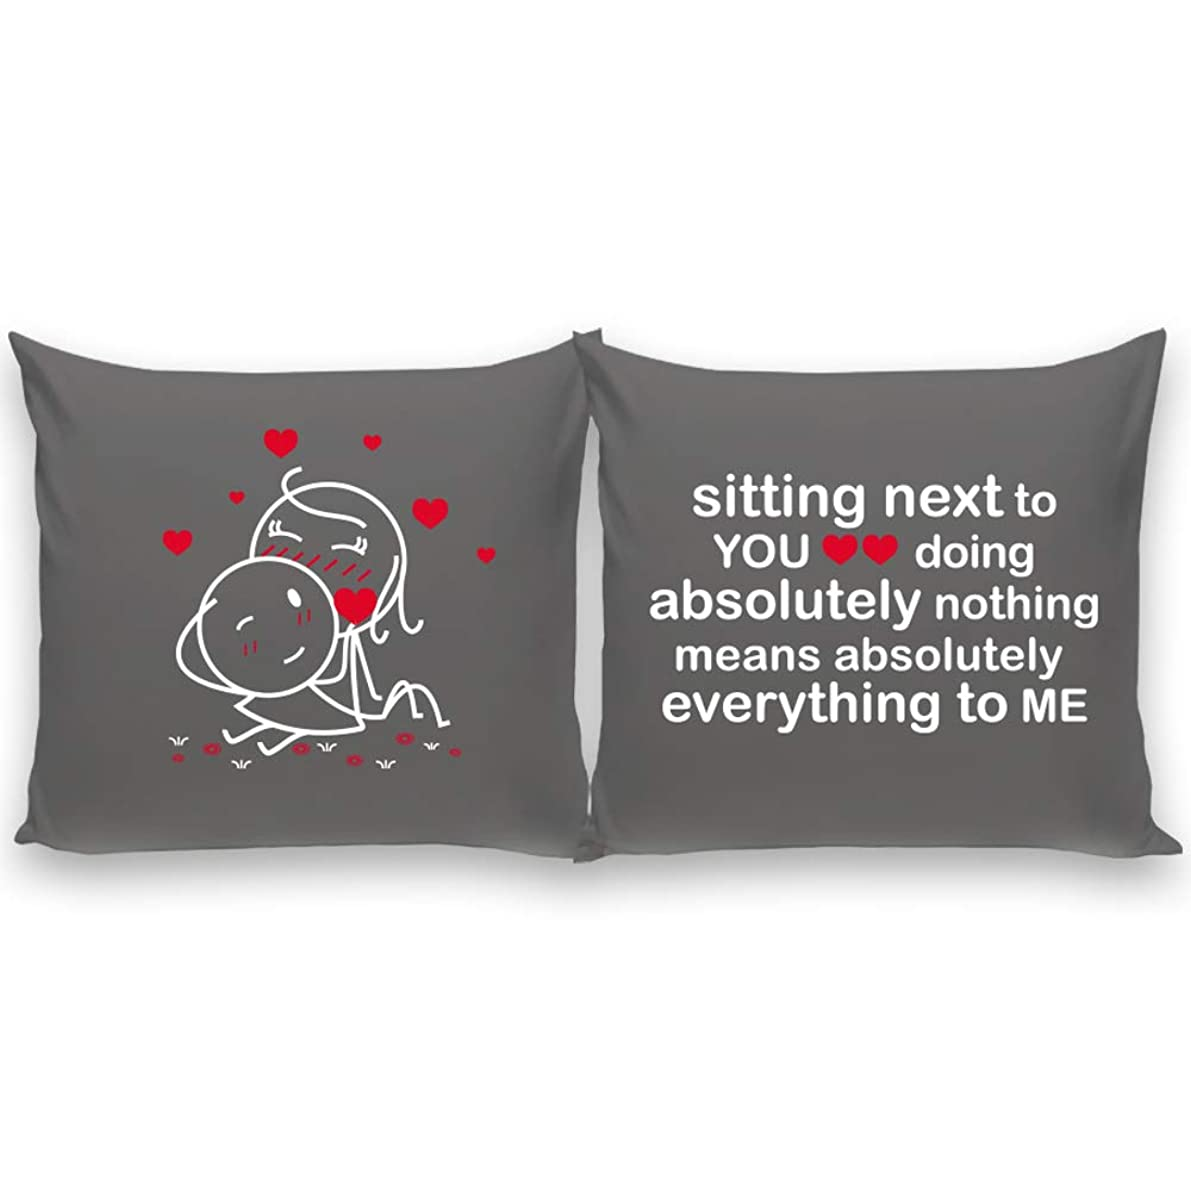 BoldLoft You Mean Everything Throw Pillow Covers 26x26 -Couple Pillowcases - Gifts for Boyfriend Girlfriend Husband Wife Anniversary Wedding Engagement - His and Hers Euro Pillow Covers Set of 2 Grey